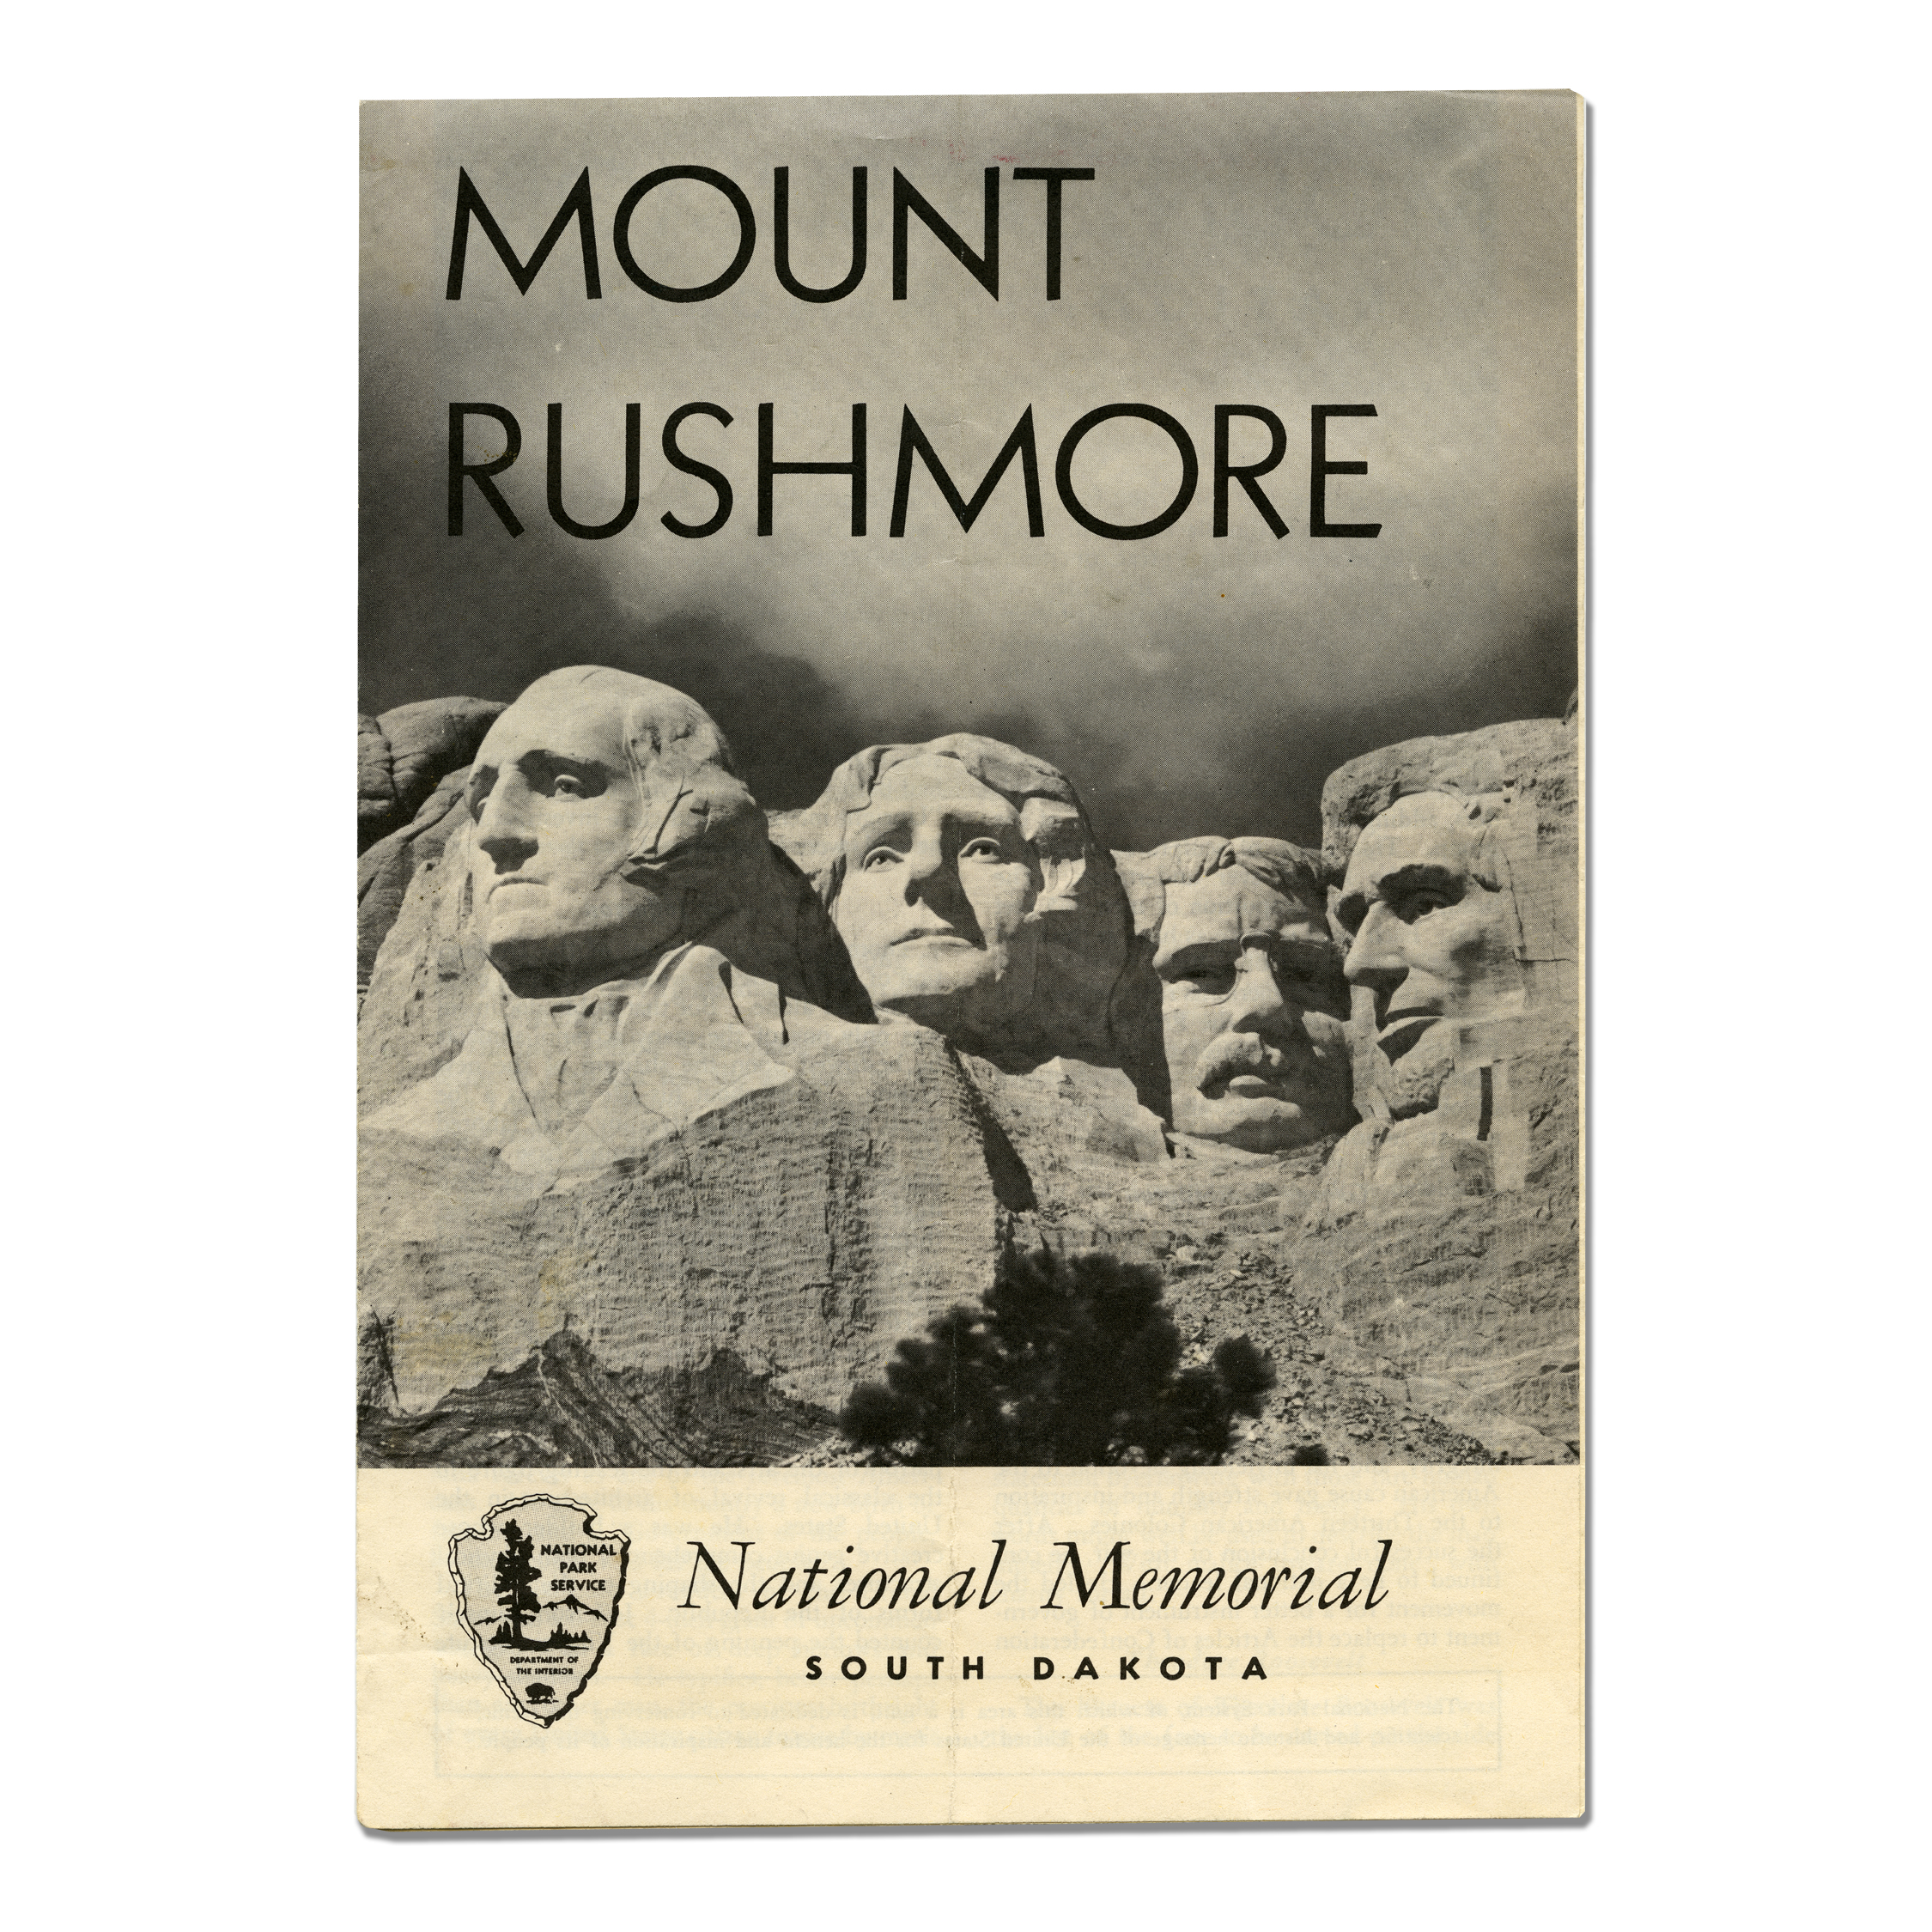 1961_mount_rushmore_national_memorial_brochure.jpg